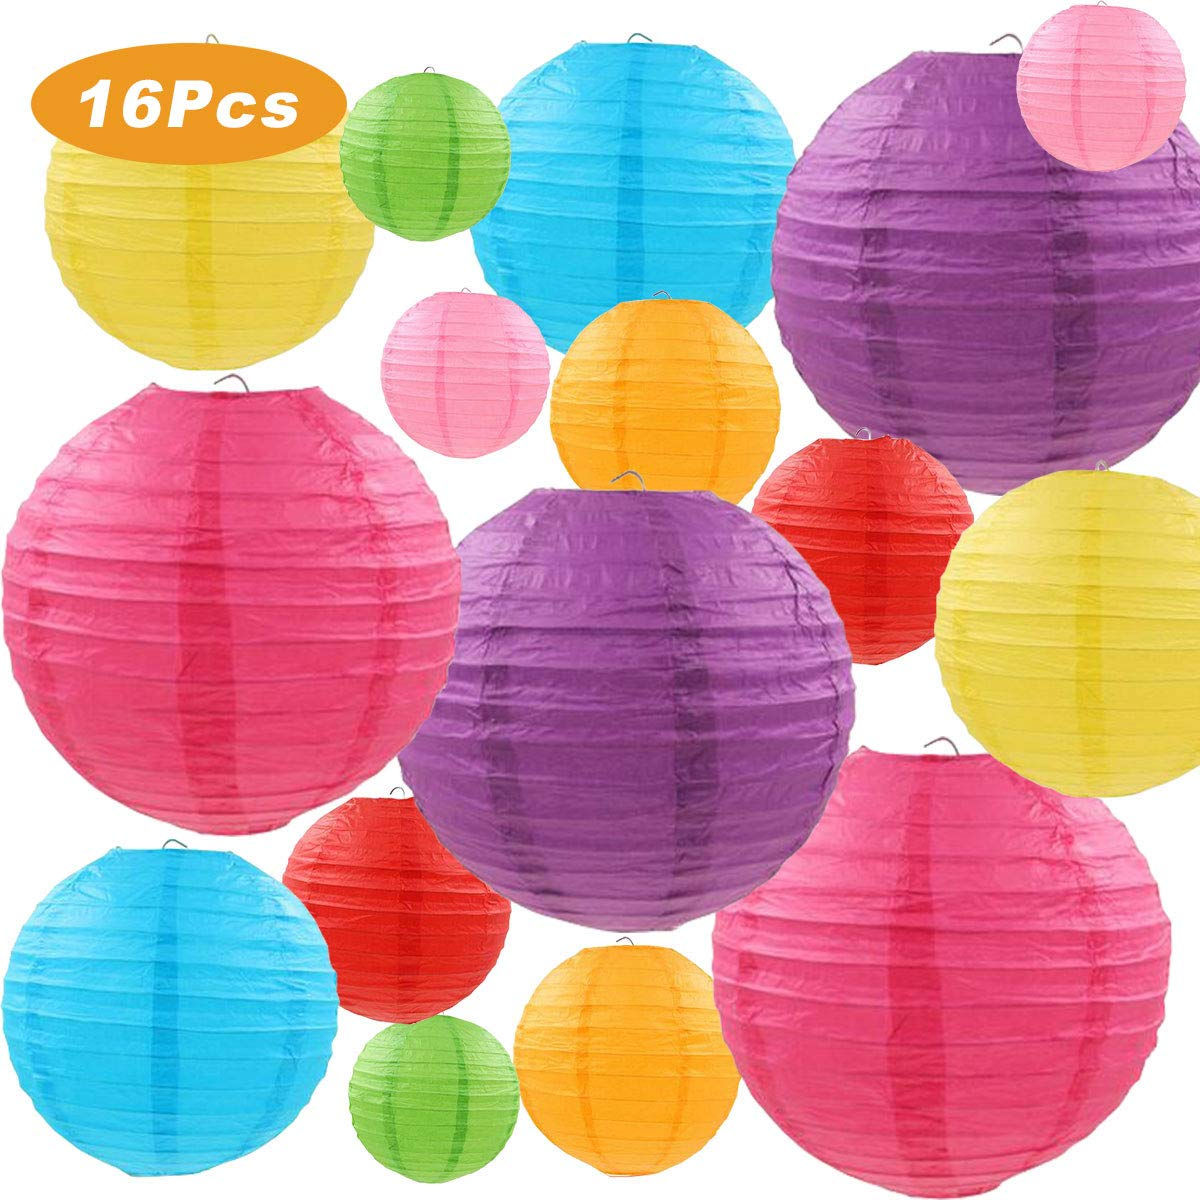 "Colorful Paper Lanterns, LURICO 16 Pcs 4"" 6"" 8""10"" Chinese Round Lantern Paper Hanging Decorations with Assorted Colors and Sizes for Birthday Bridal Wedding Baby Shower Festival Party Decorations N-CPL-16"